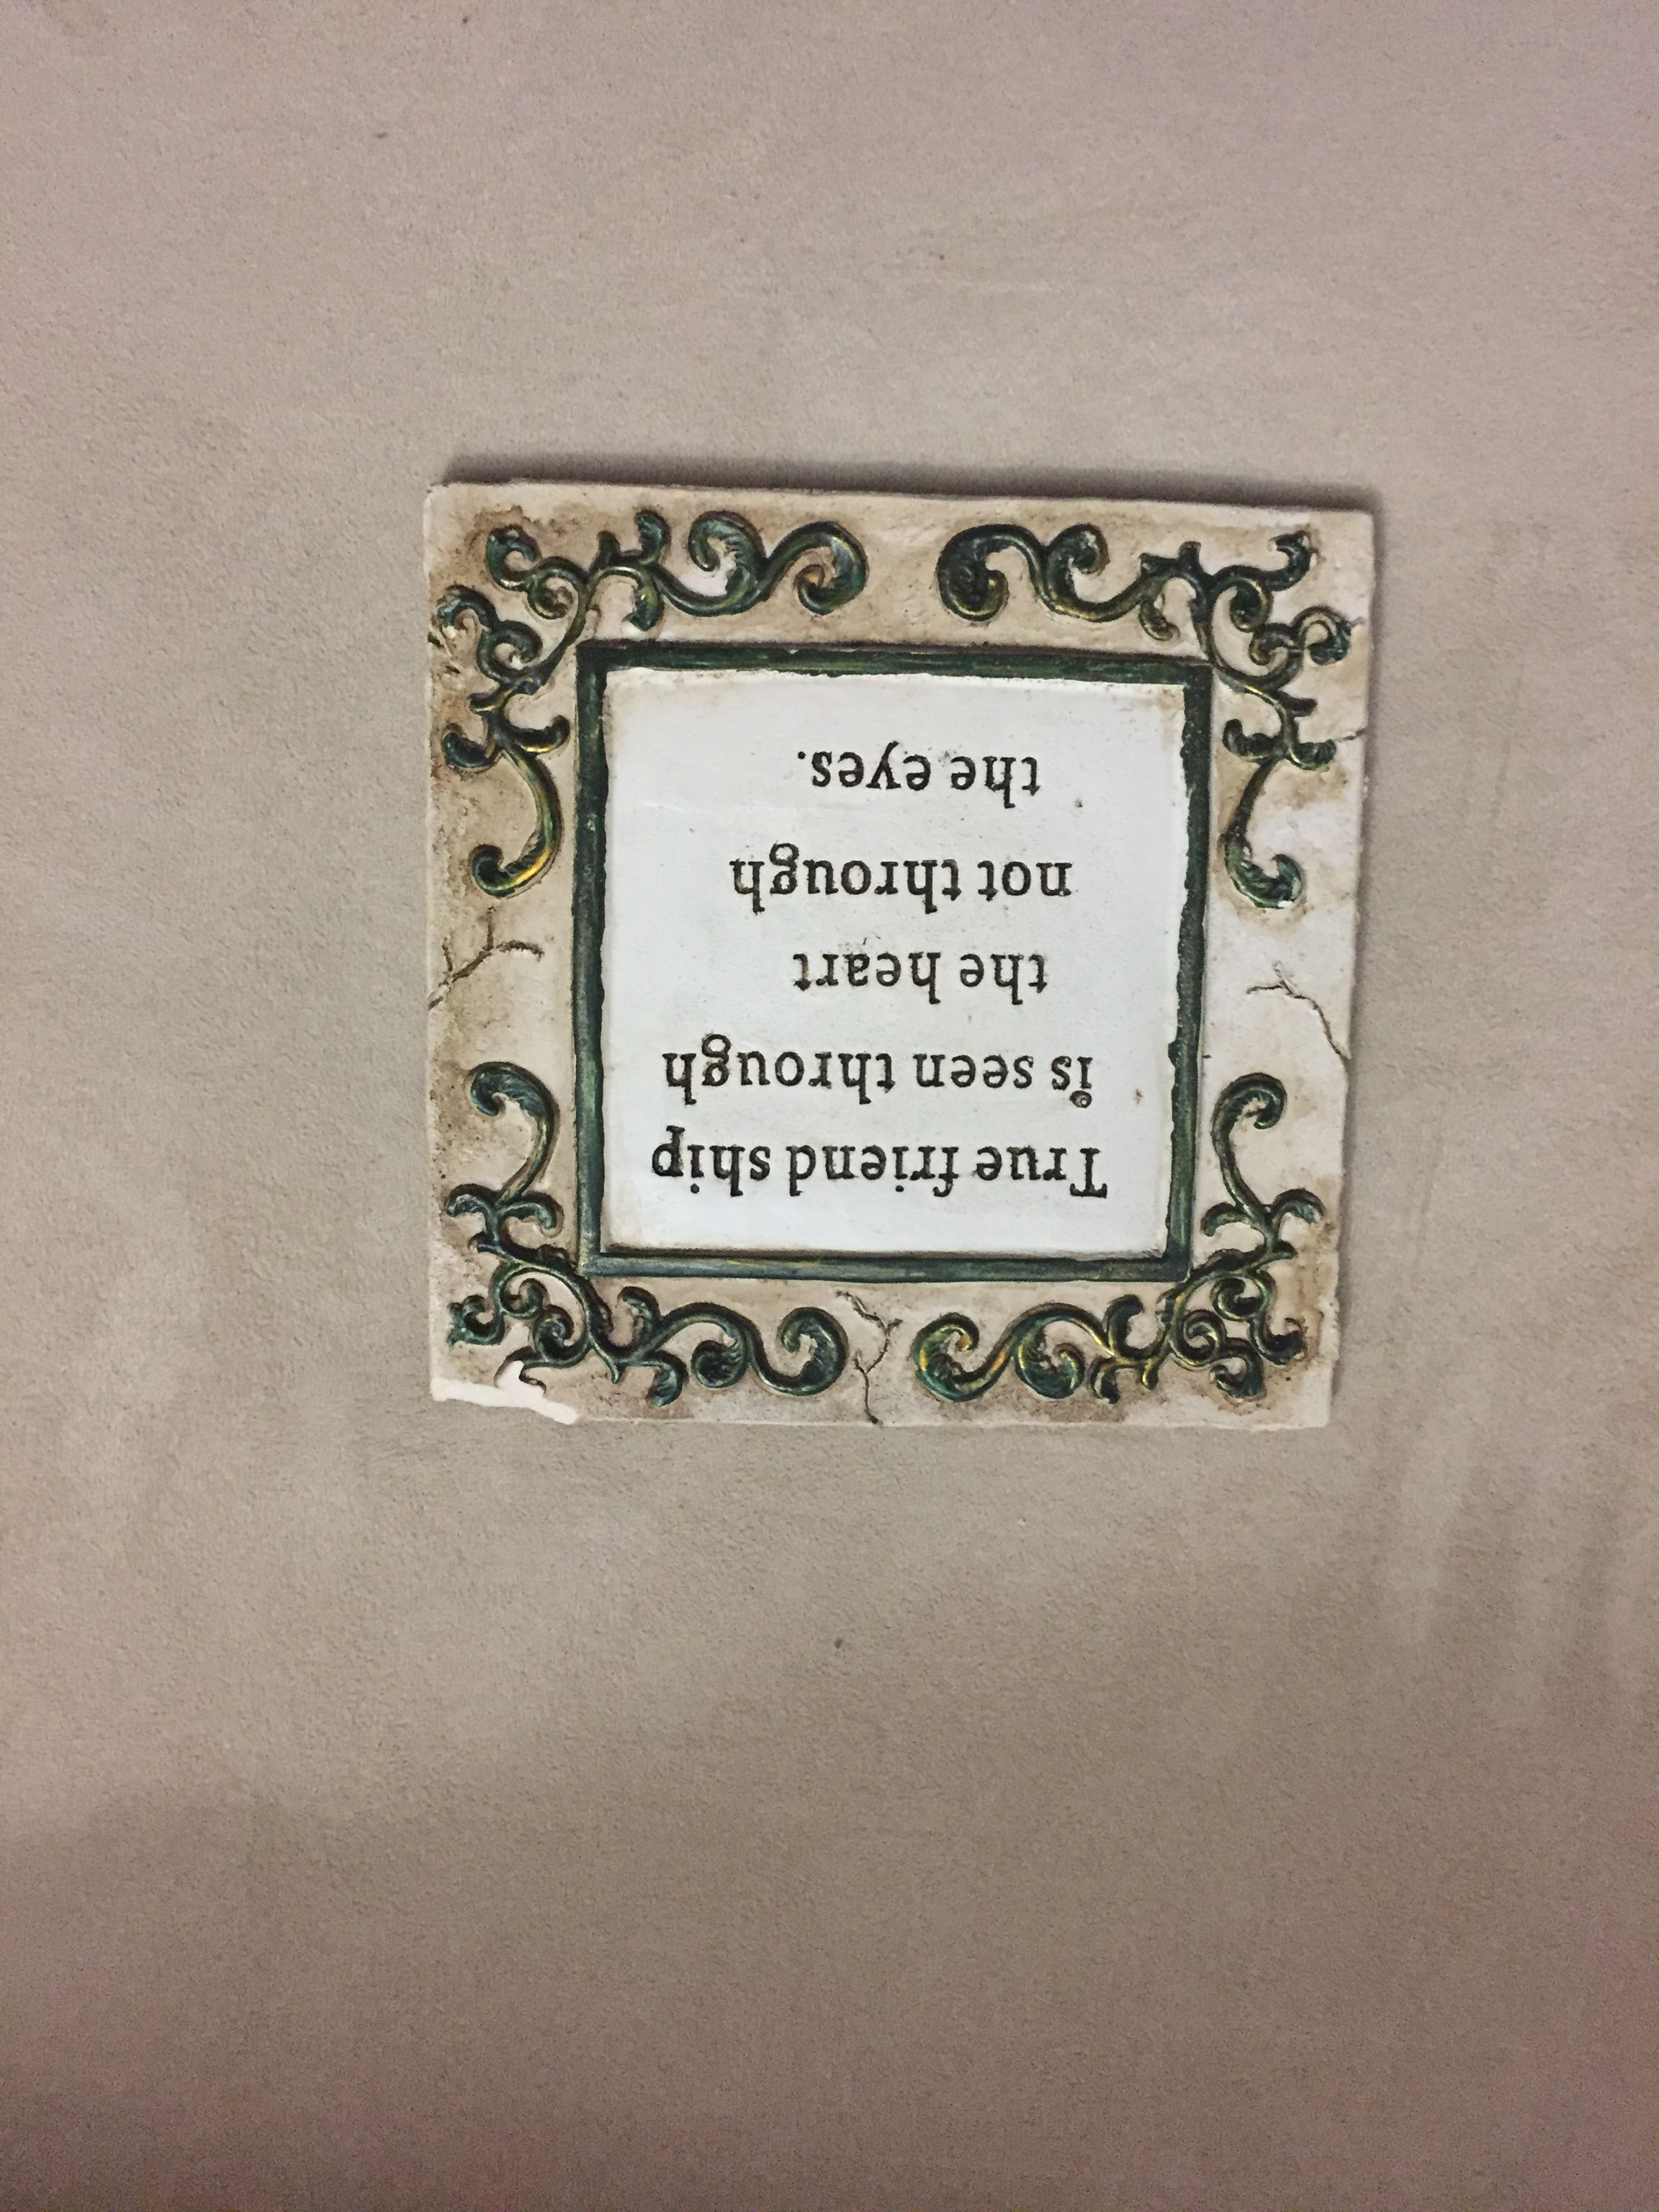 Friendship plaque - small chip in corner - 50 cents